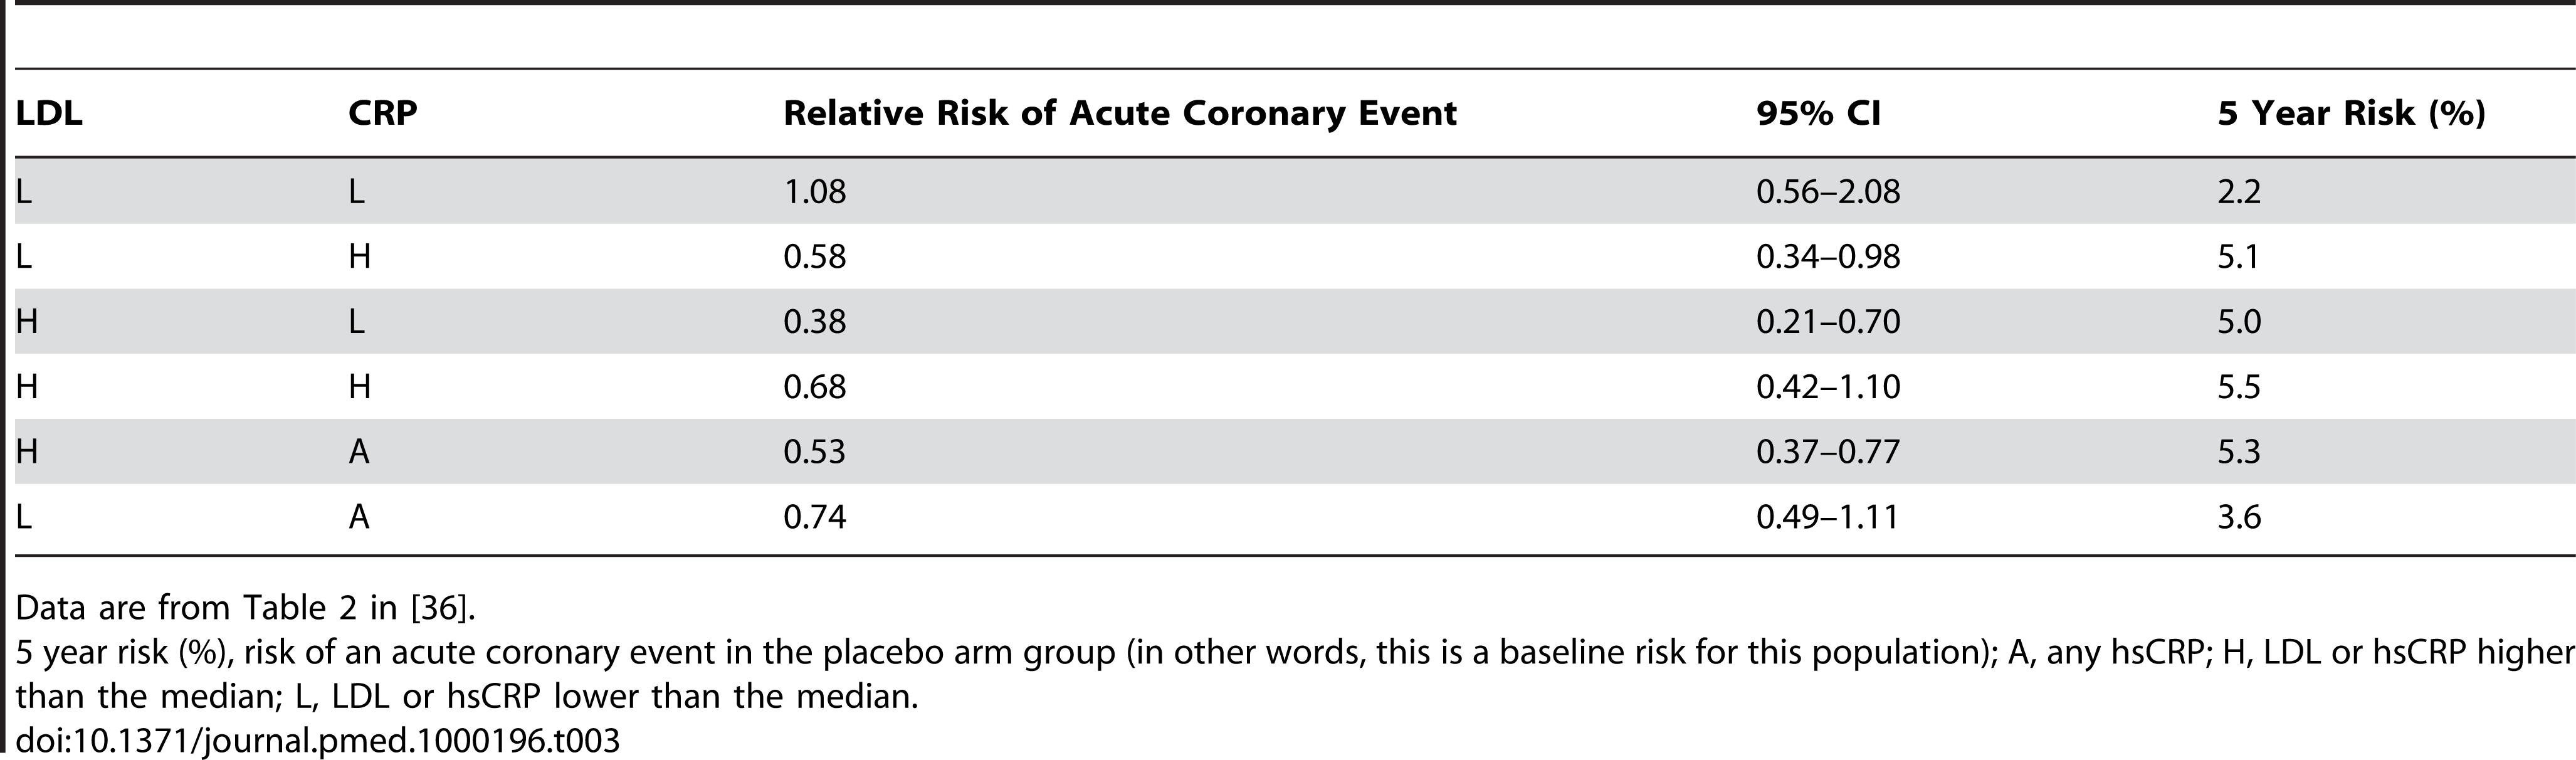 AFCAPS/TexCAPS acute coronary disease results - Relative risks (and 95% CIs) associated with lovastatin therapy, according to baseline lipid and C-reactive protein levels.